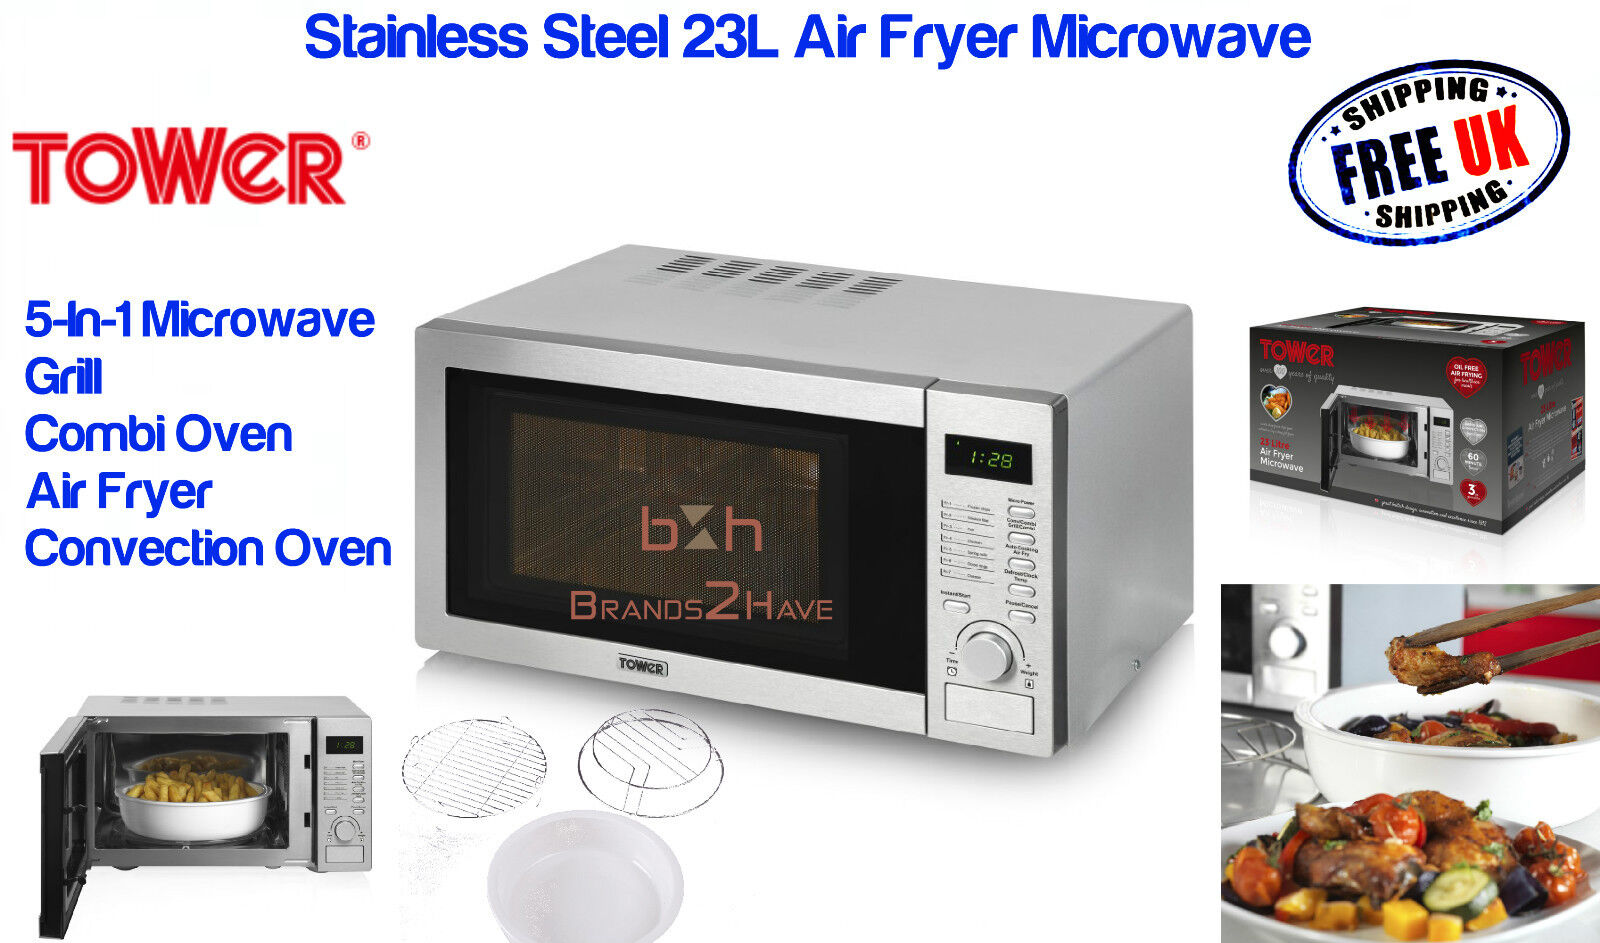 Tower 23l Multi Function Stainless Sl Air Fryer Microwave